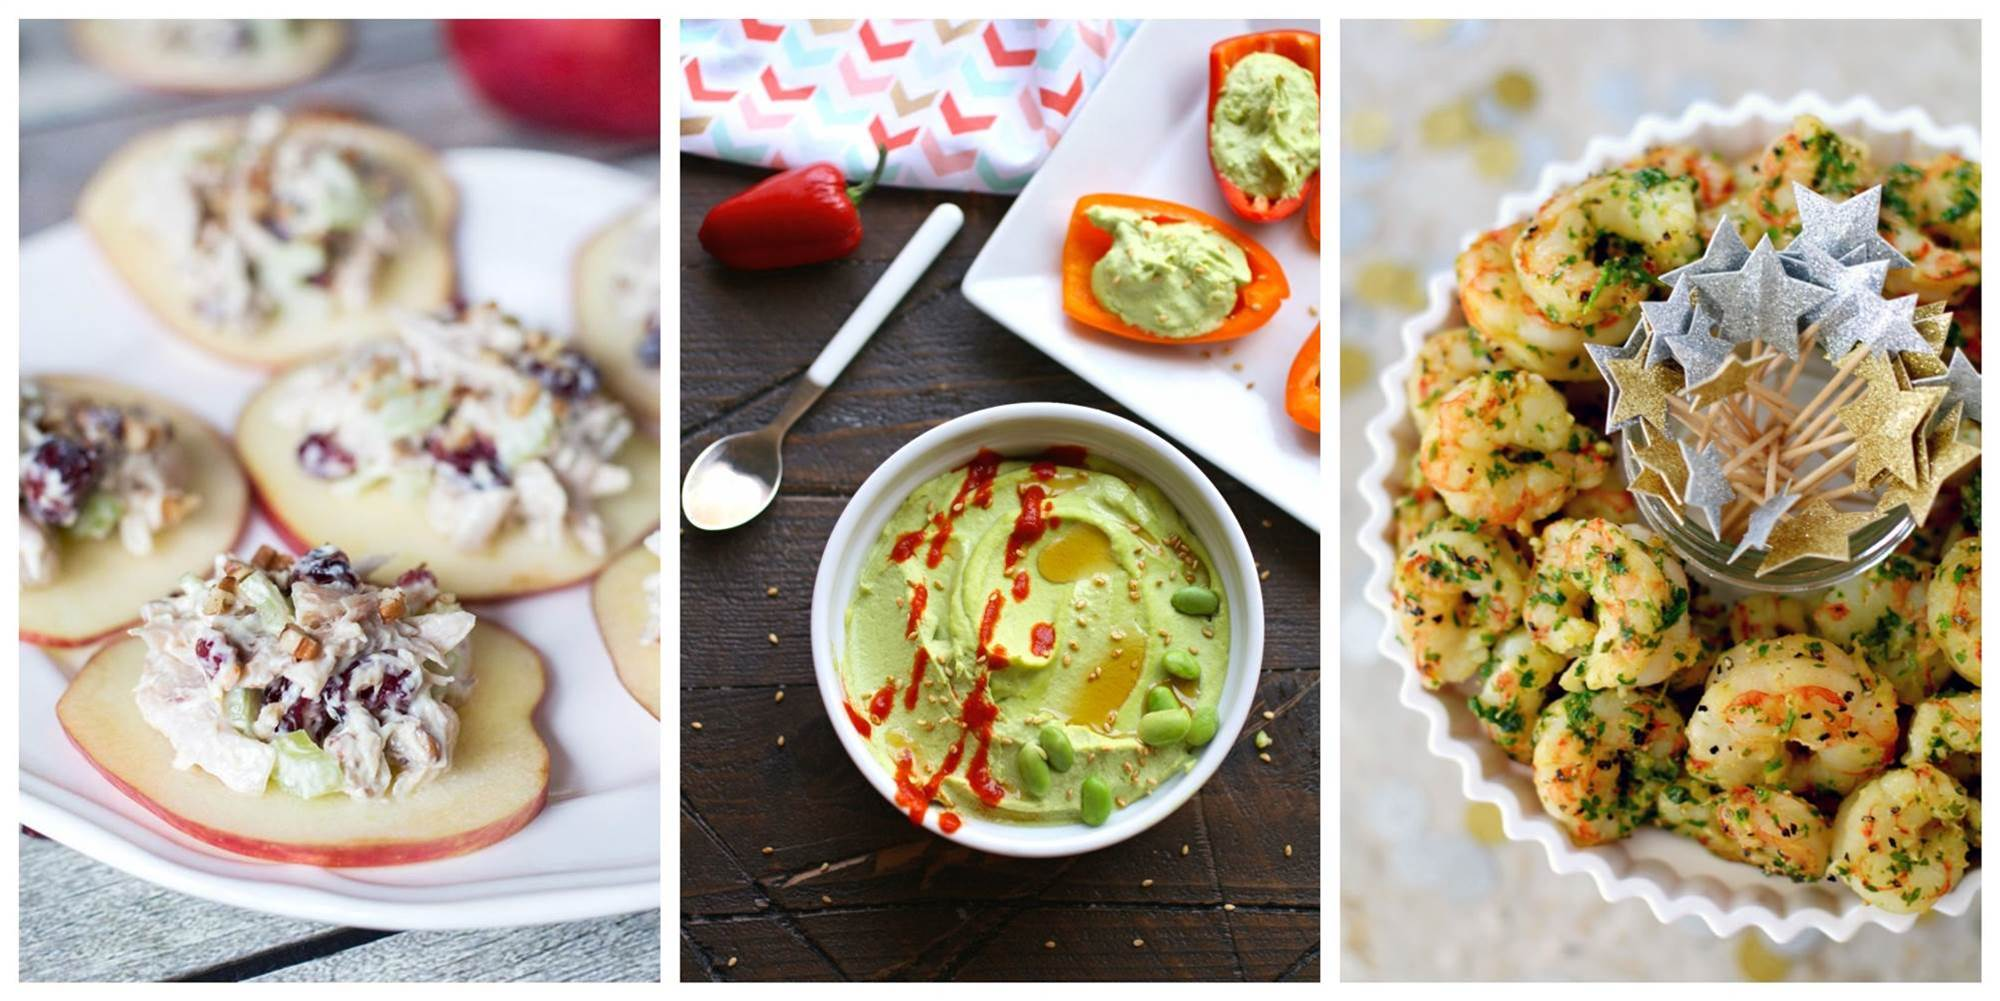 12 Healthy Appetisers That Are Delicious and Easy to Whip Up Fast